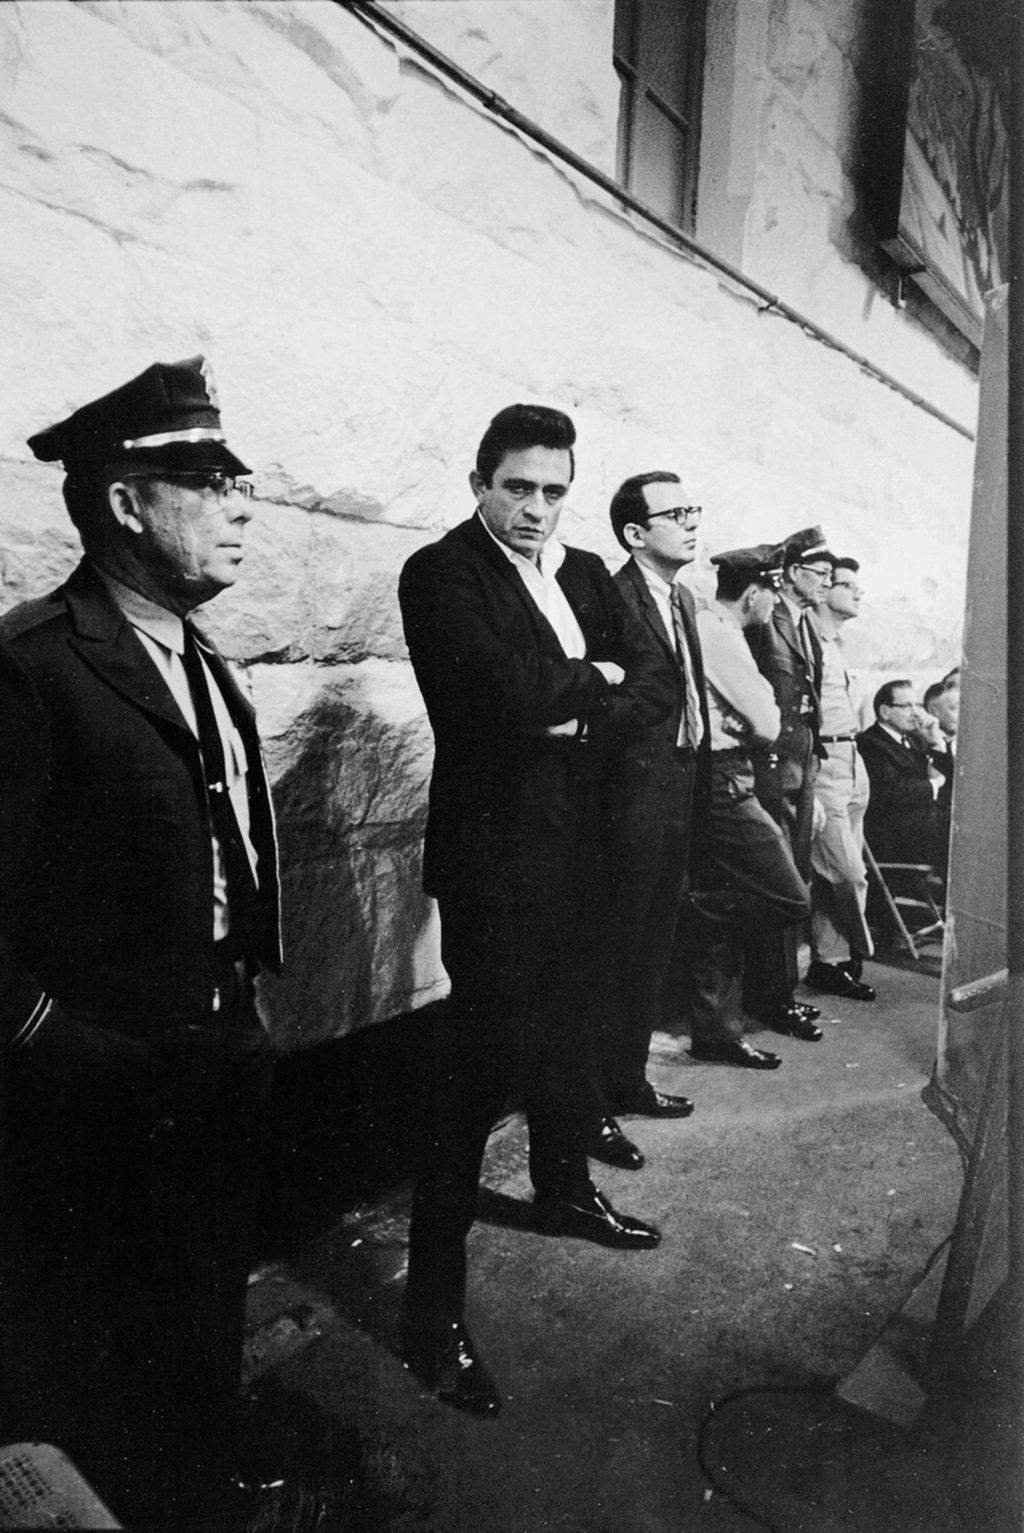 Johnny Cash waiting to play at Folsom Prison 1968. Photograph by Jim Marshall. https://t.co/UmNZZL3HMy